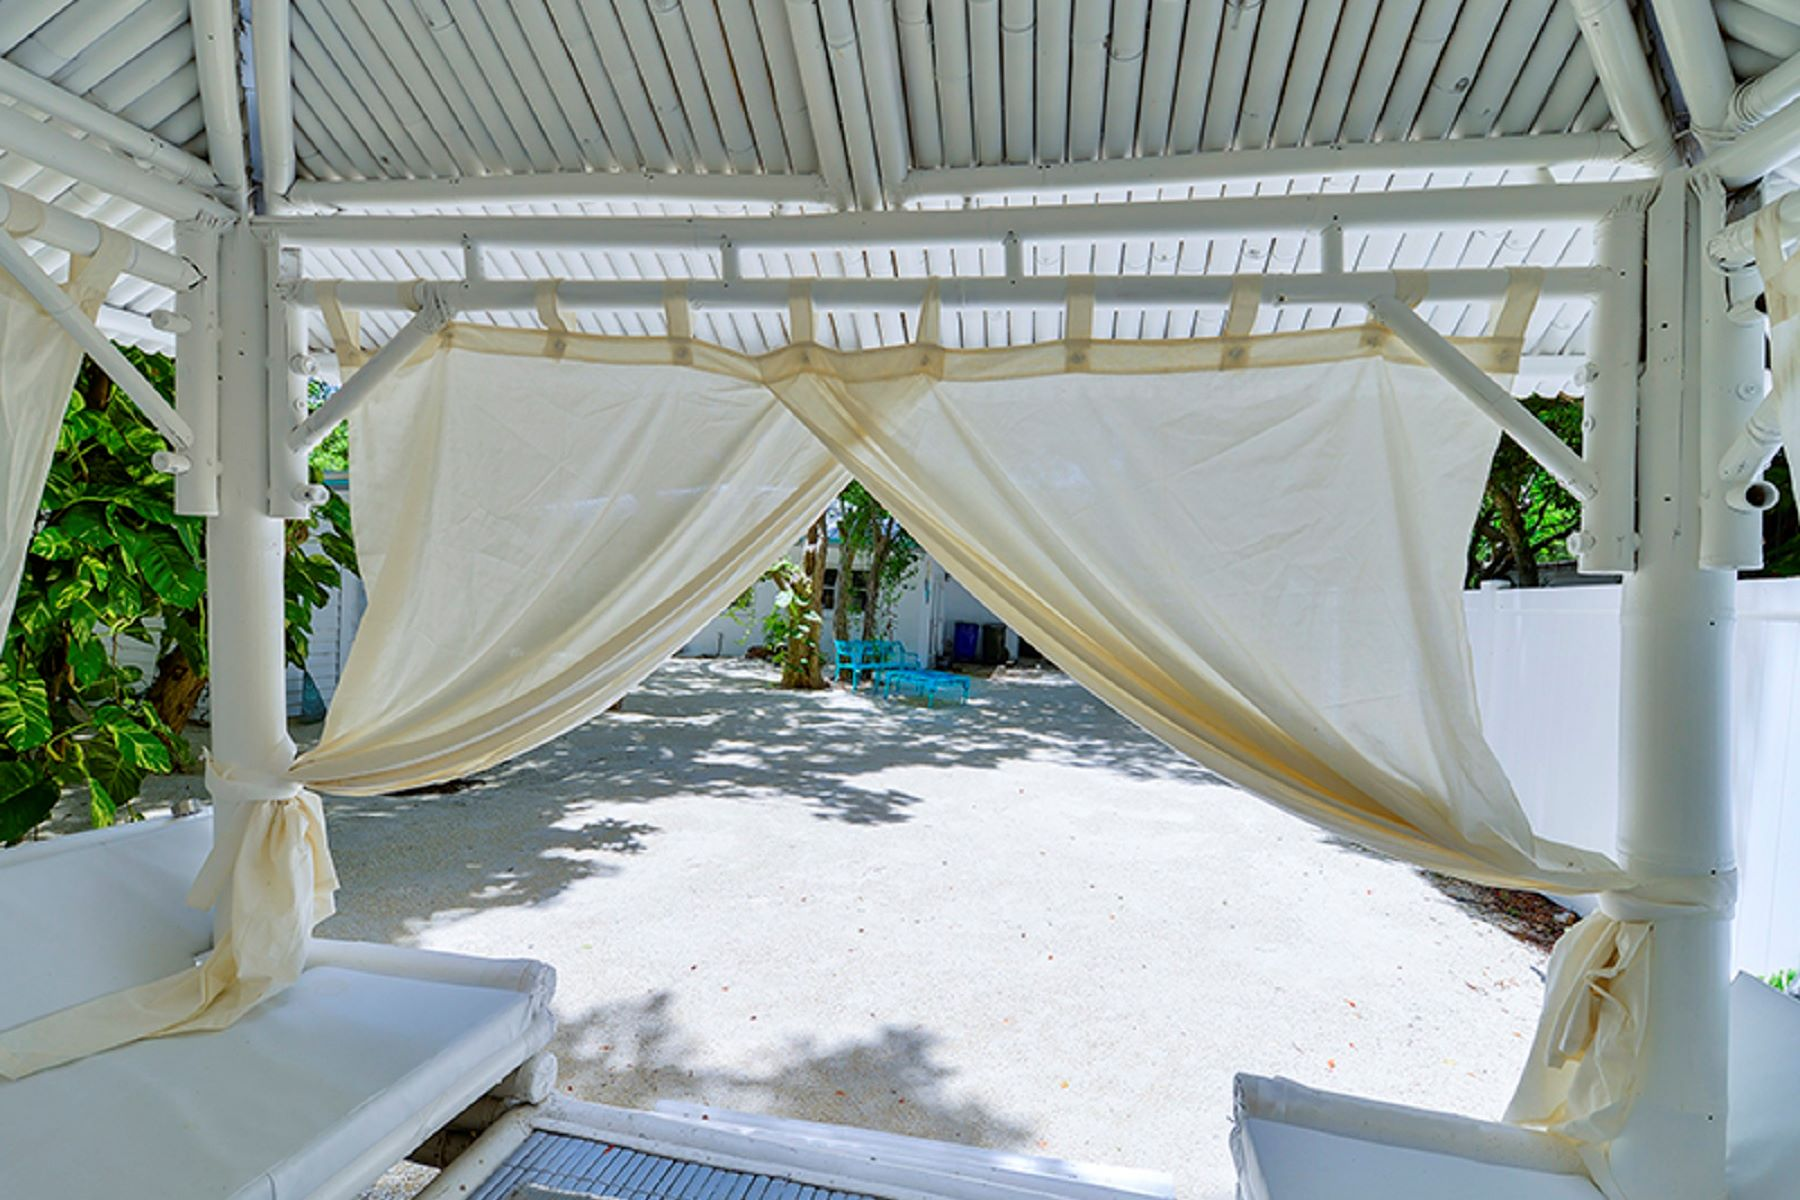 Single Family Home for Sale at Desirable Cottage 200 Thompsonville Road Florida Keys, Islamorada, Florida, 33070 United States